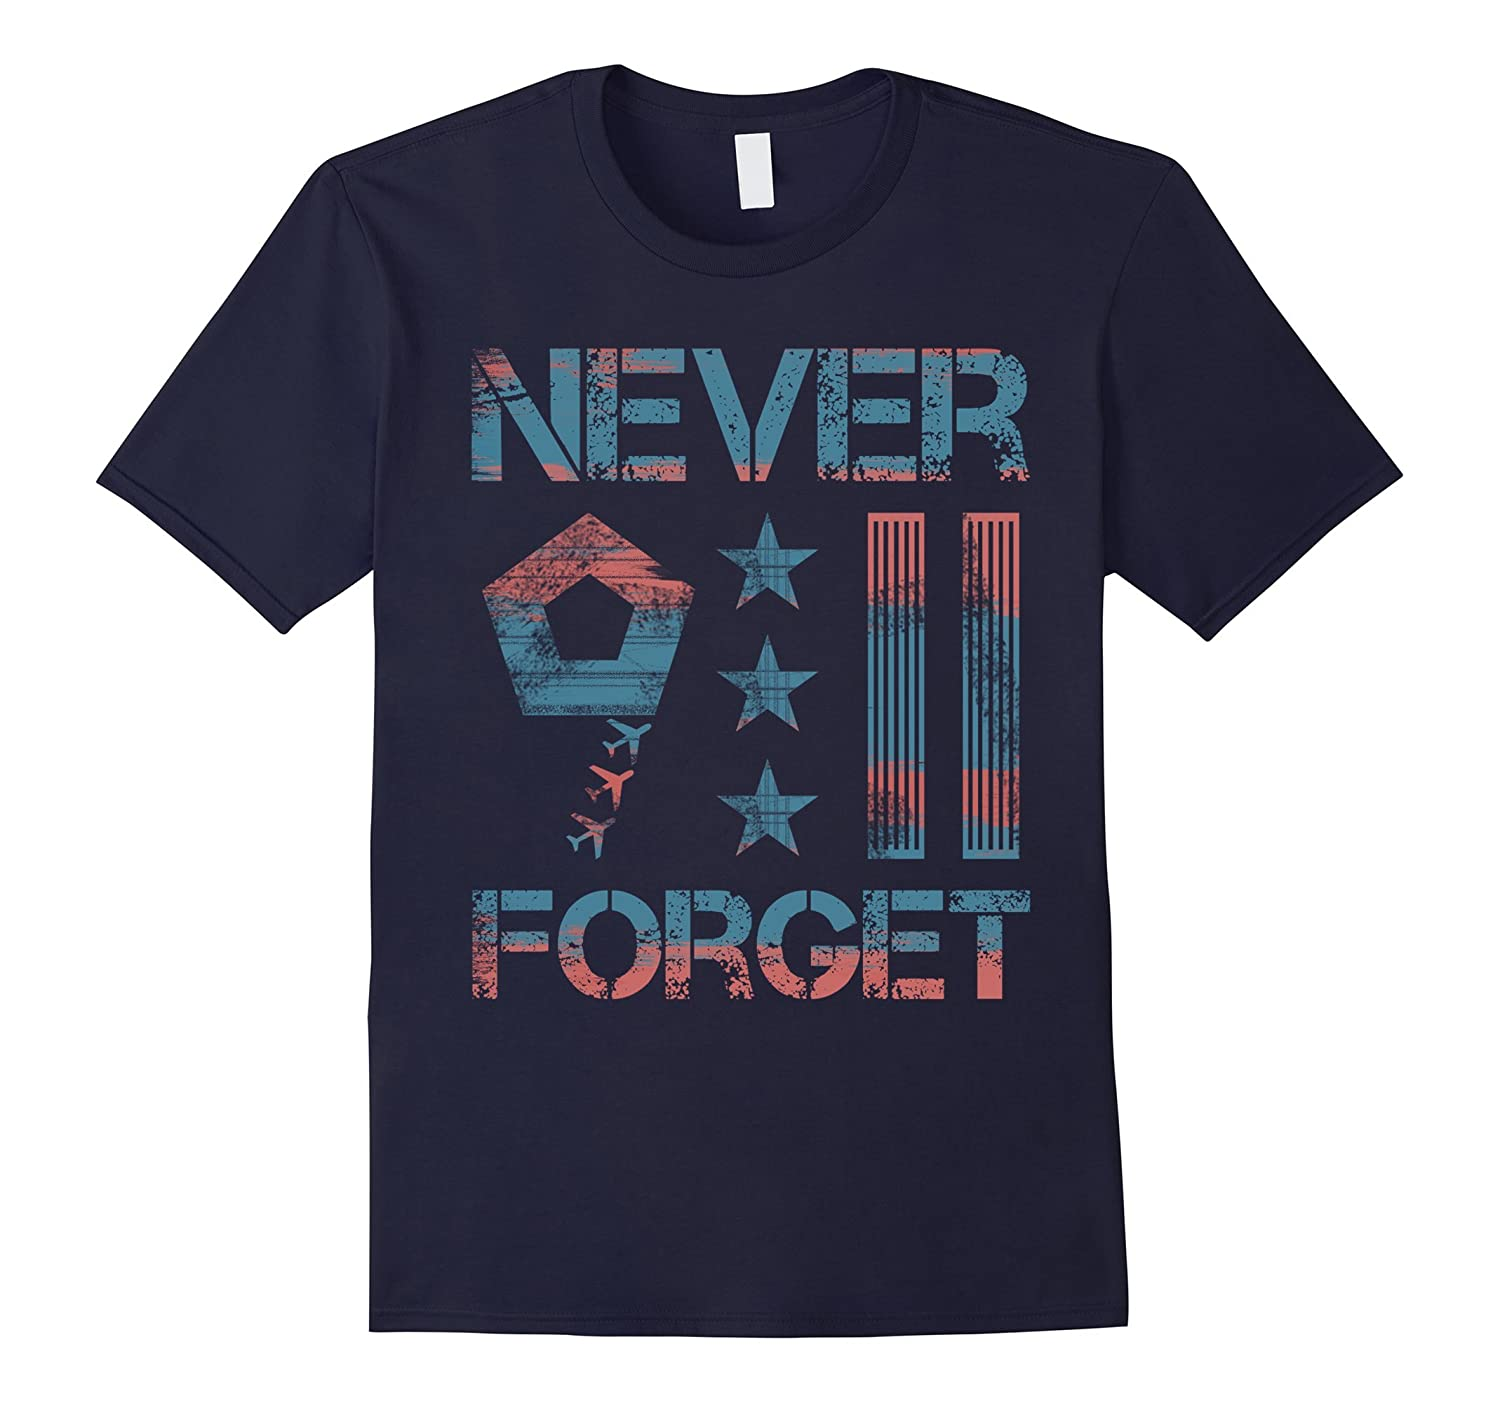 9/11 Remembrance, We Will Never Forget-TH